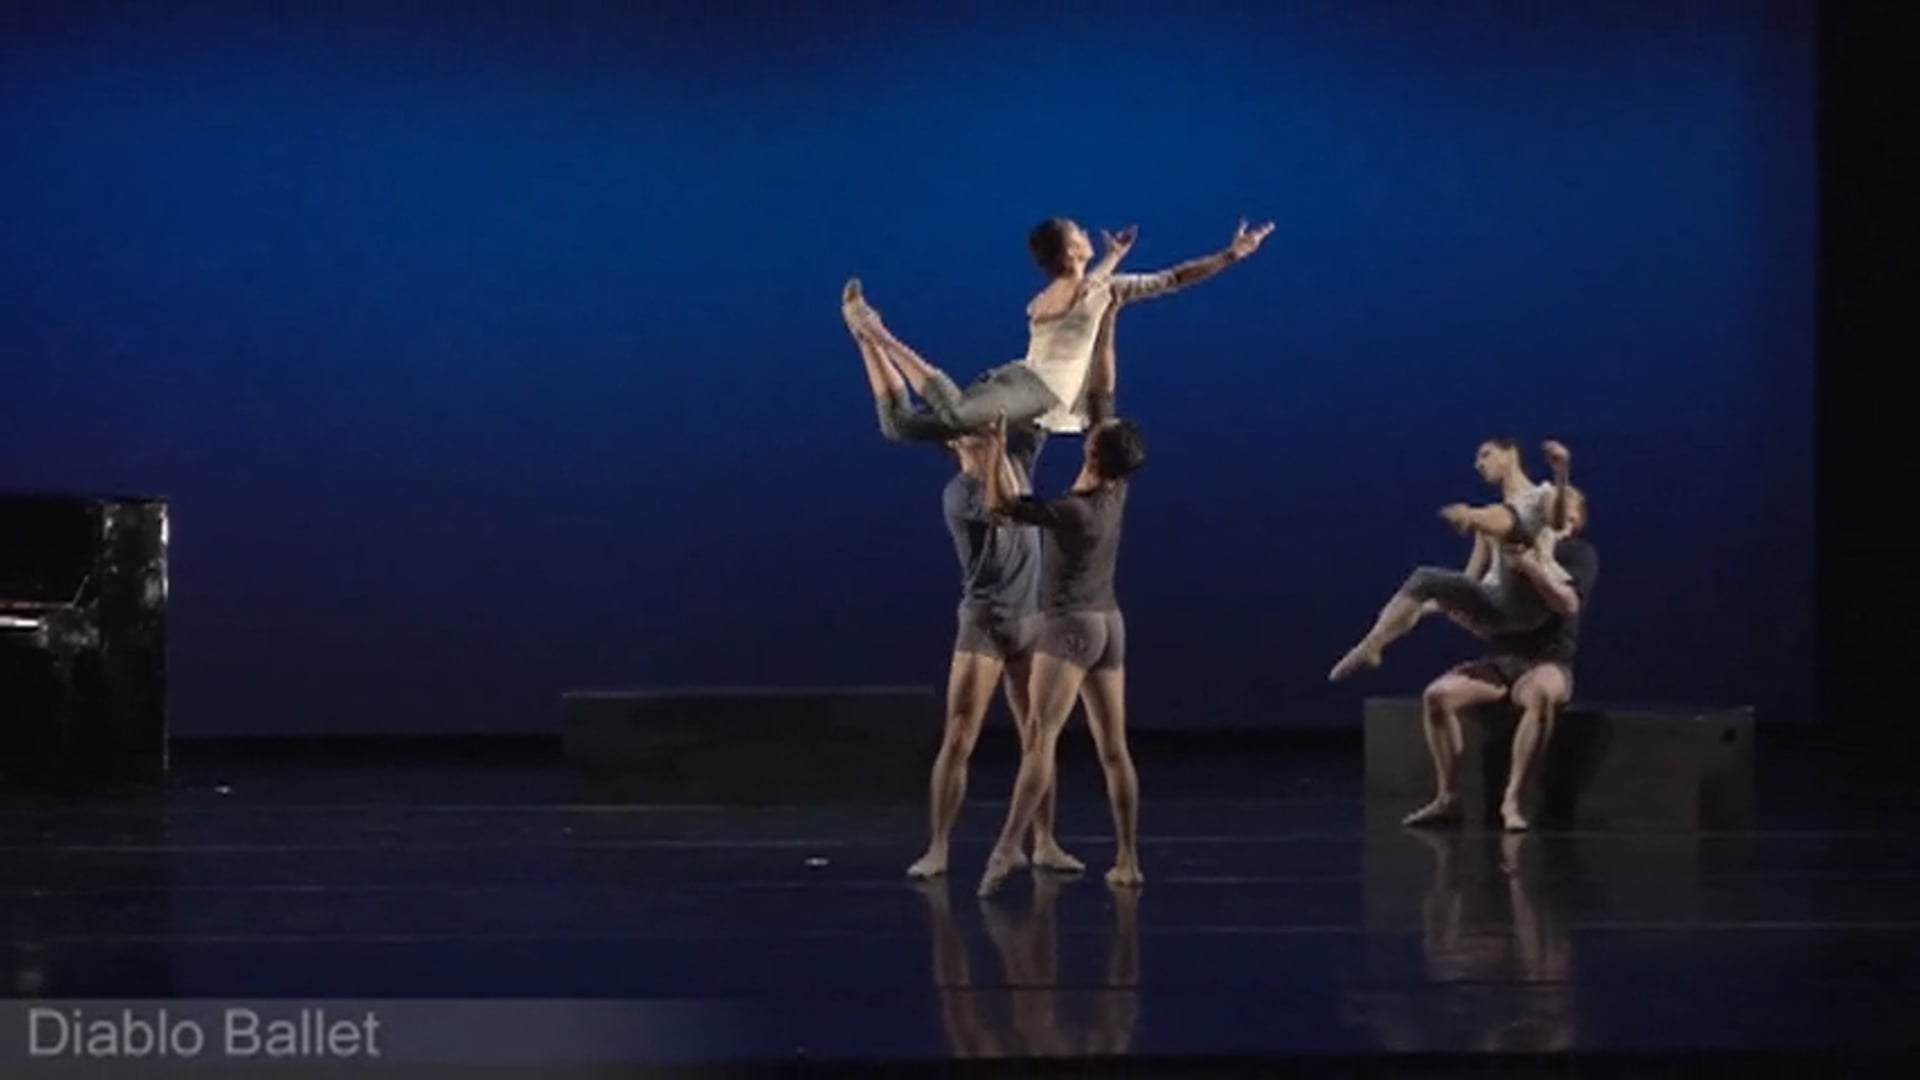 """Diablo Ballet  2-1-2019 8:00 PM - """"From Another Time"""" Choreography: Tina Kay Bohnstedt, Composer: Justin Levitt"""